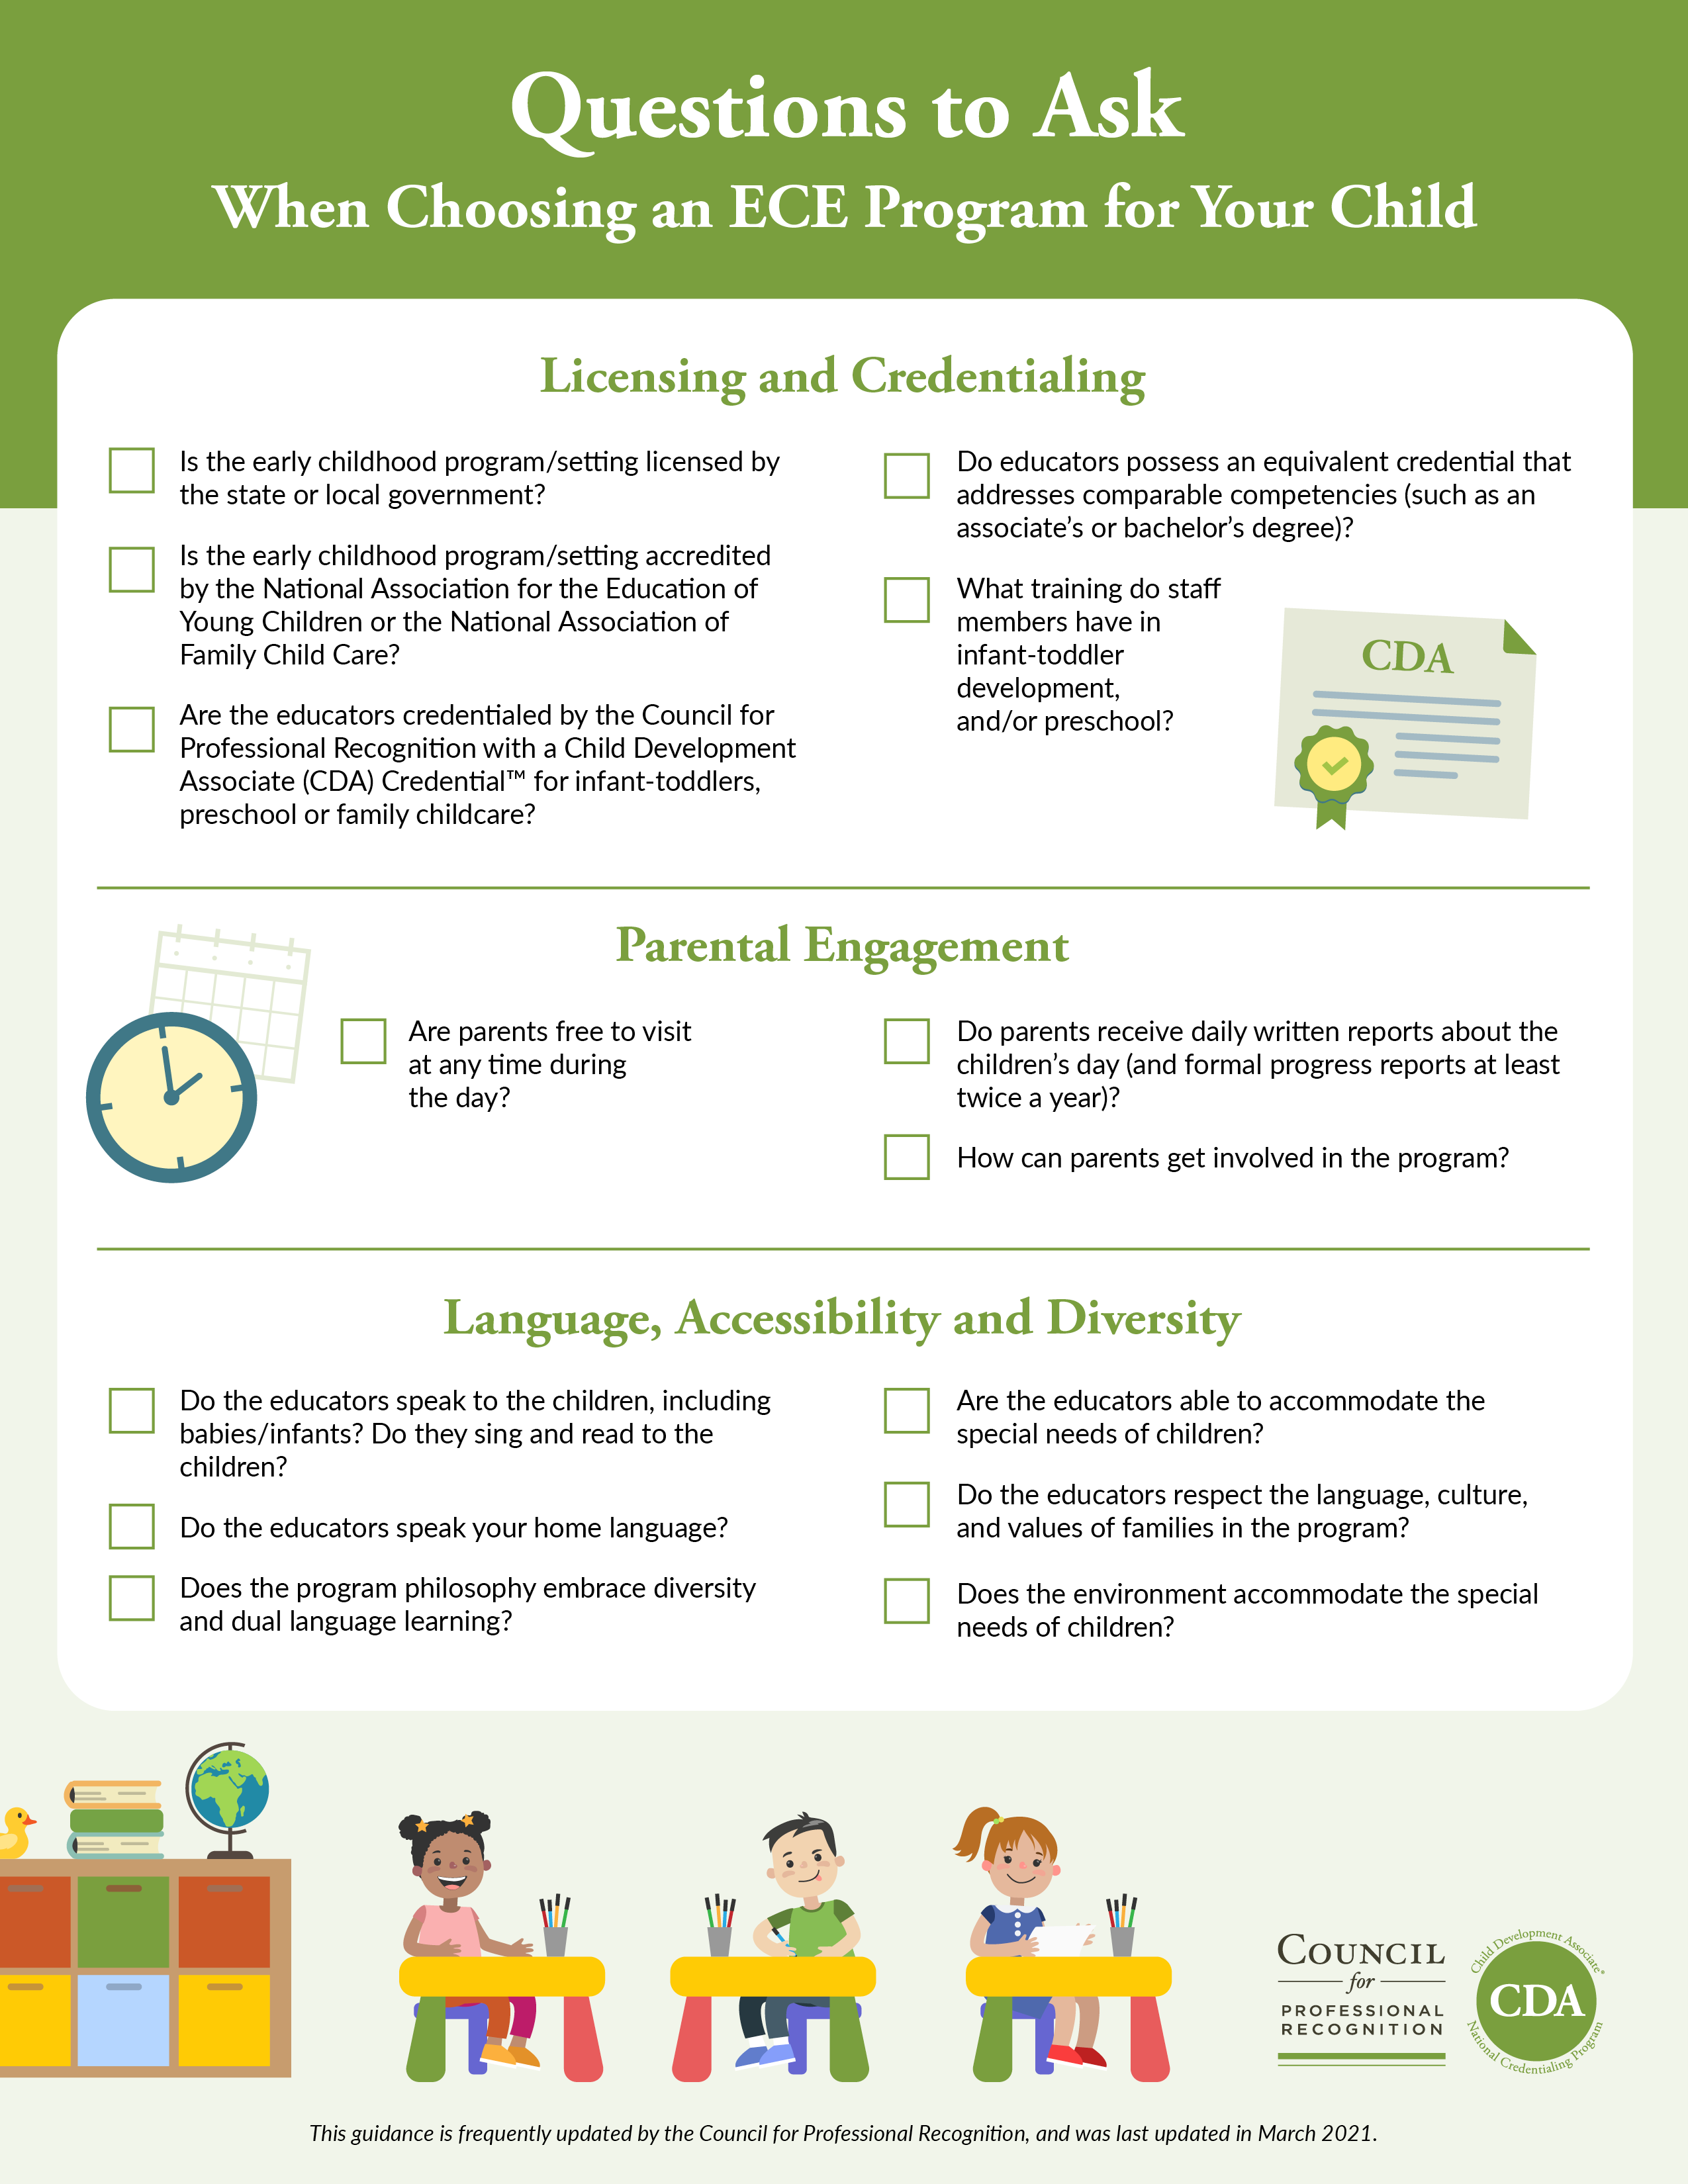 35 Essential Questions to Ask When Choosing an ECE Program for Your Child